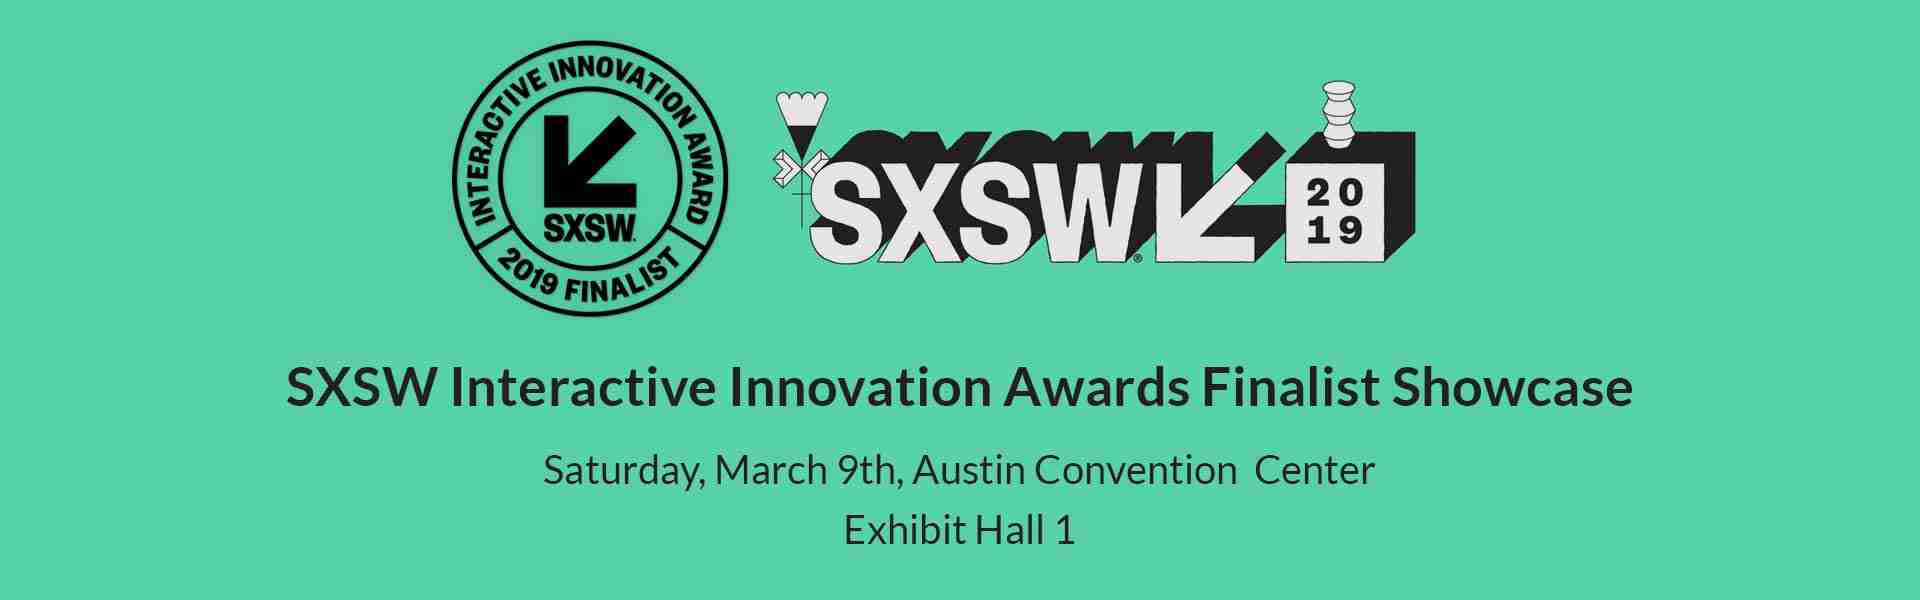 SXSW Interactive Awards Finalist Showcase 2019 - AEye